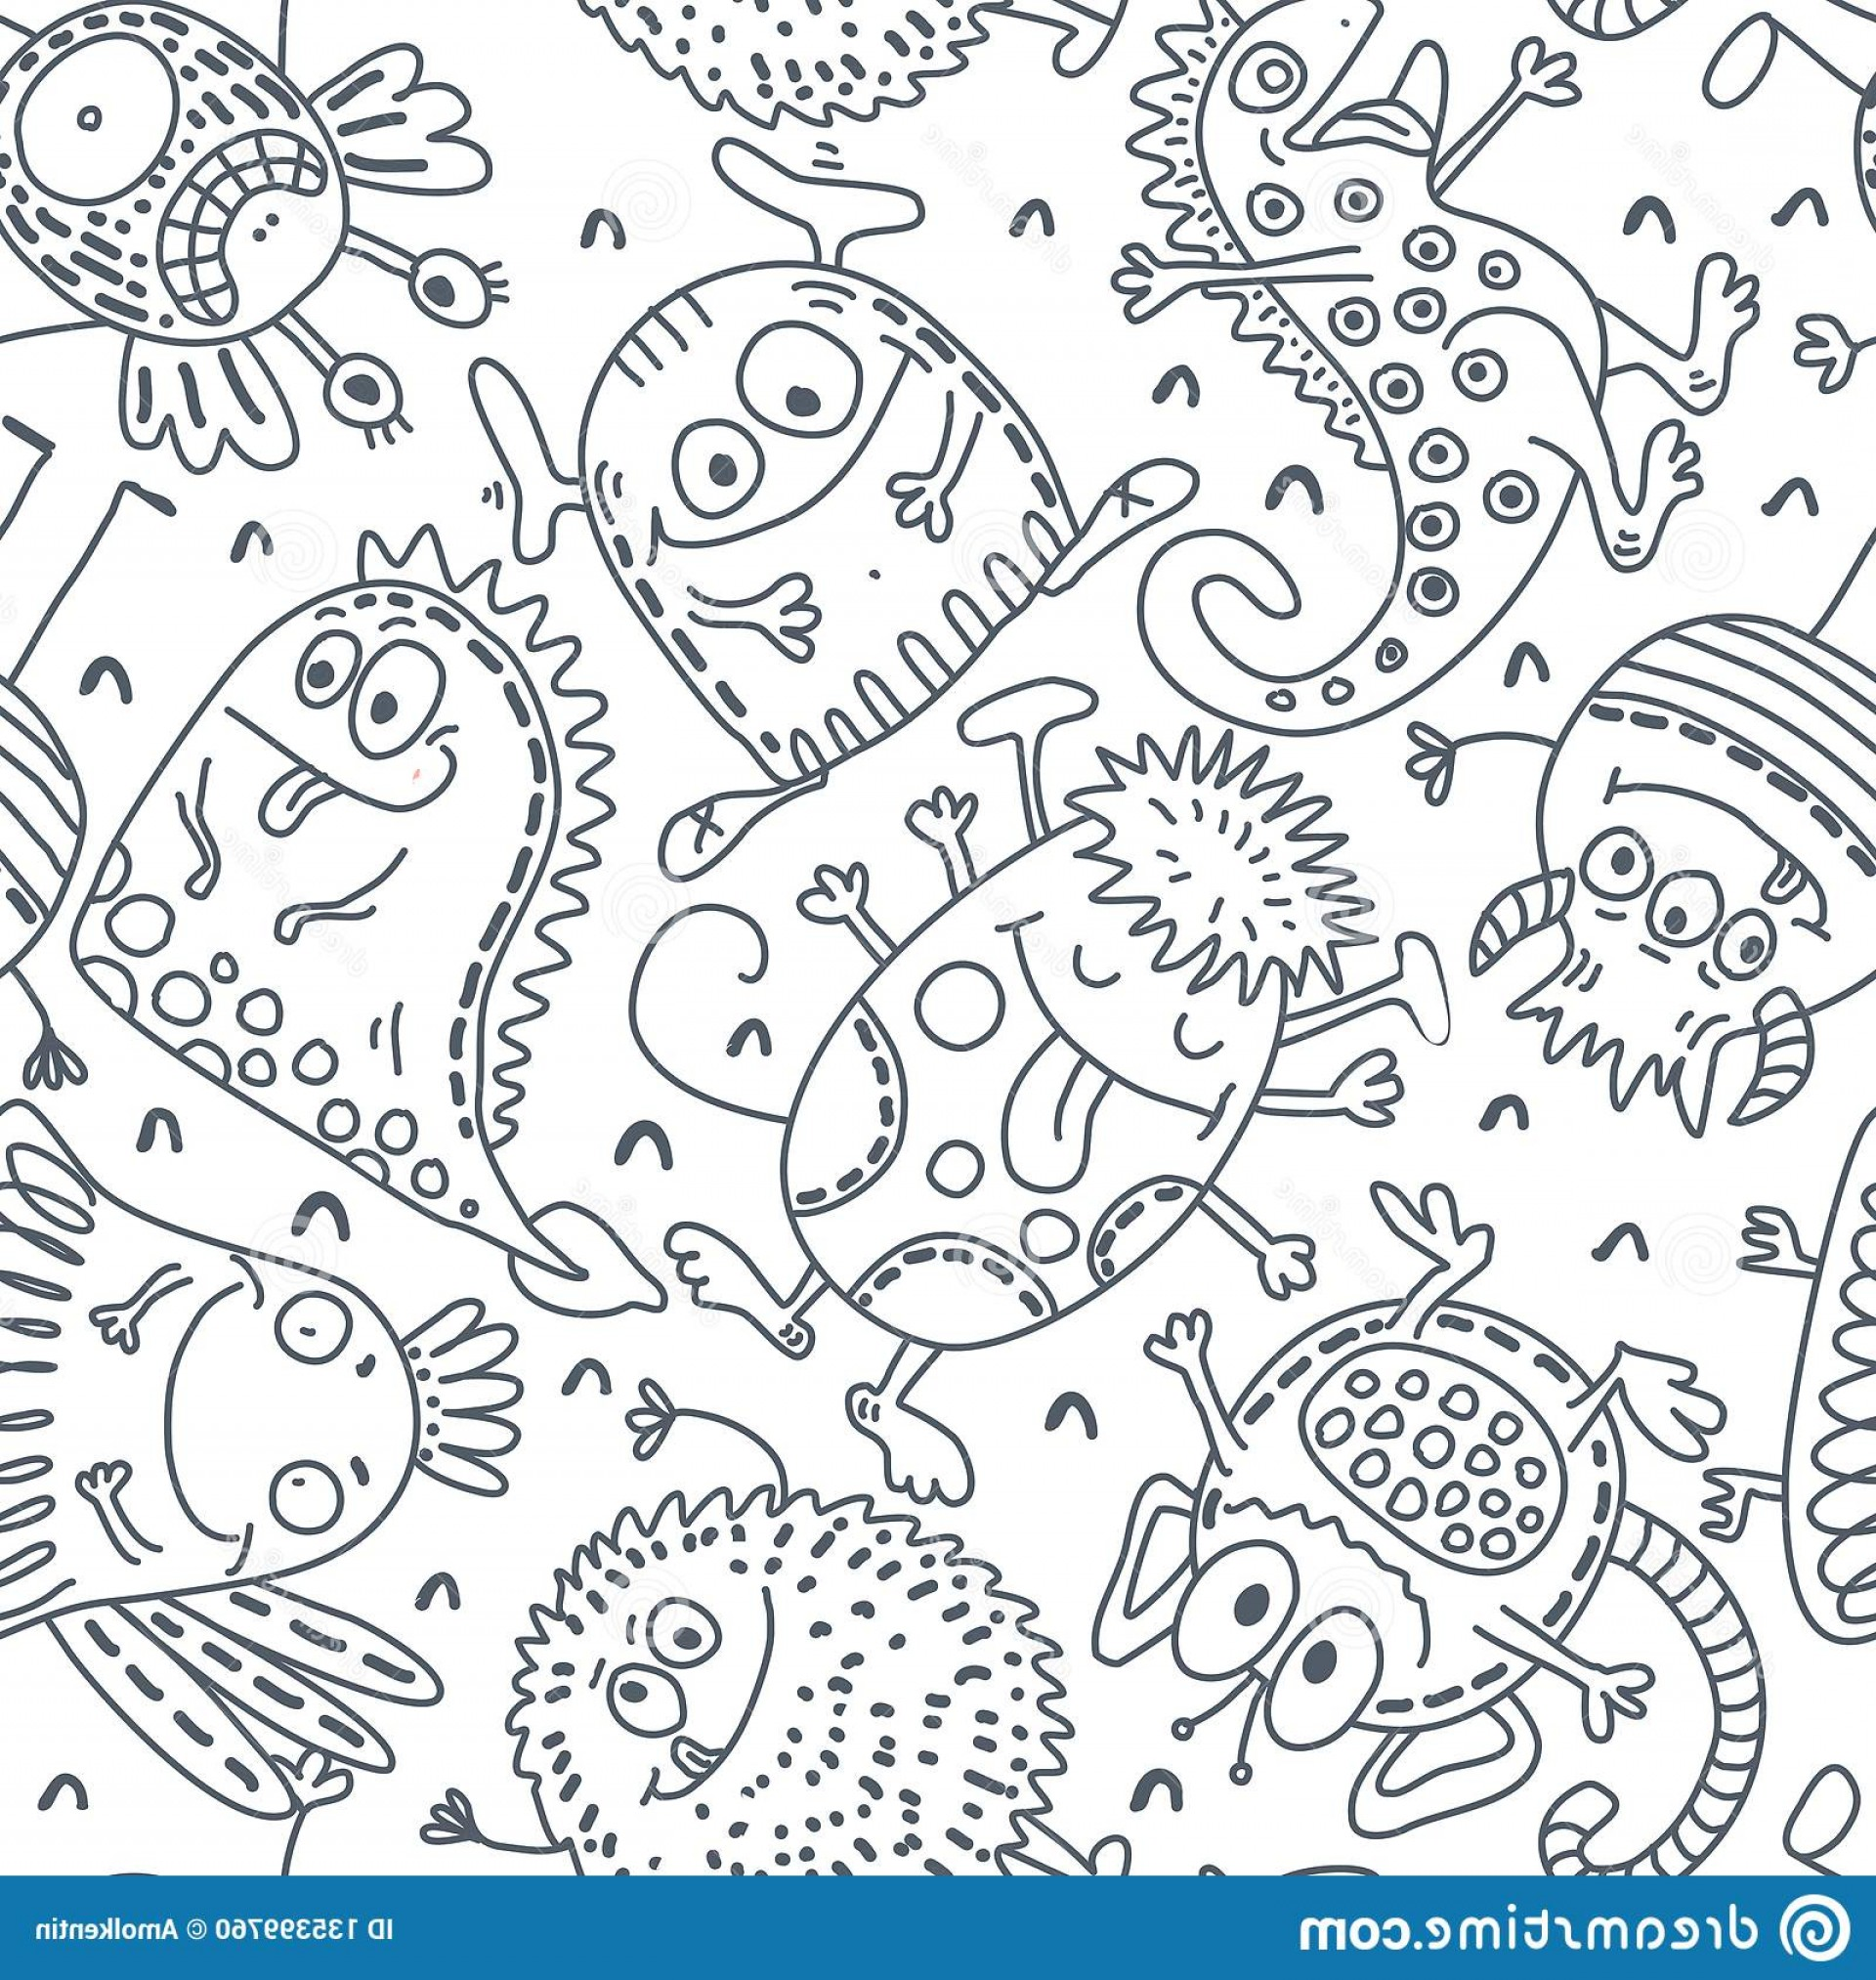 Funny Black And White Vector: Black White Vector Seamless Pattern Funny Monsters Black White Vector Seamless Pattern Funny Monsters Cute Image